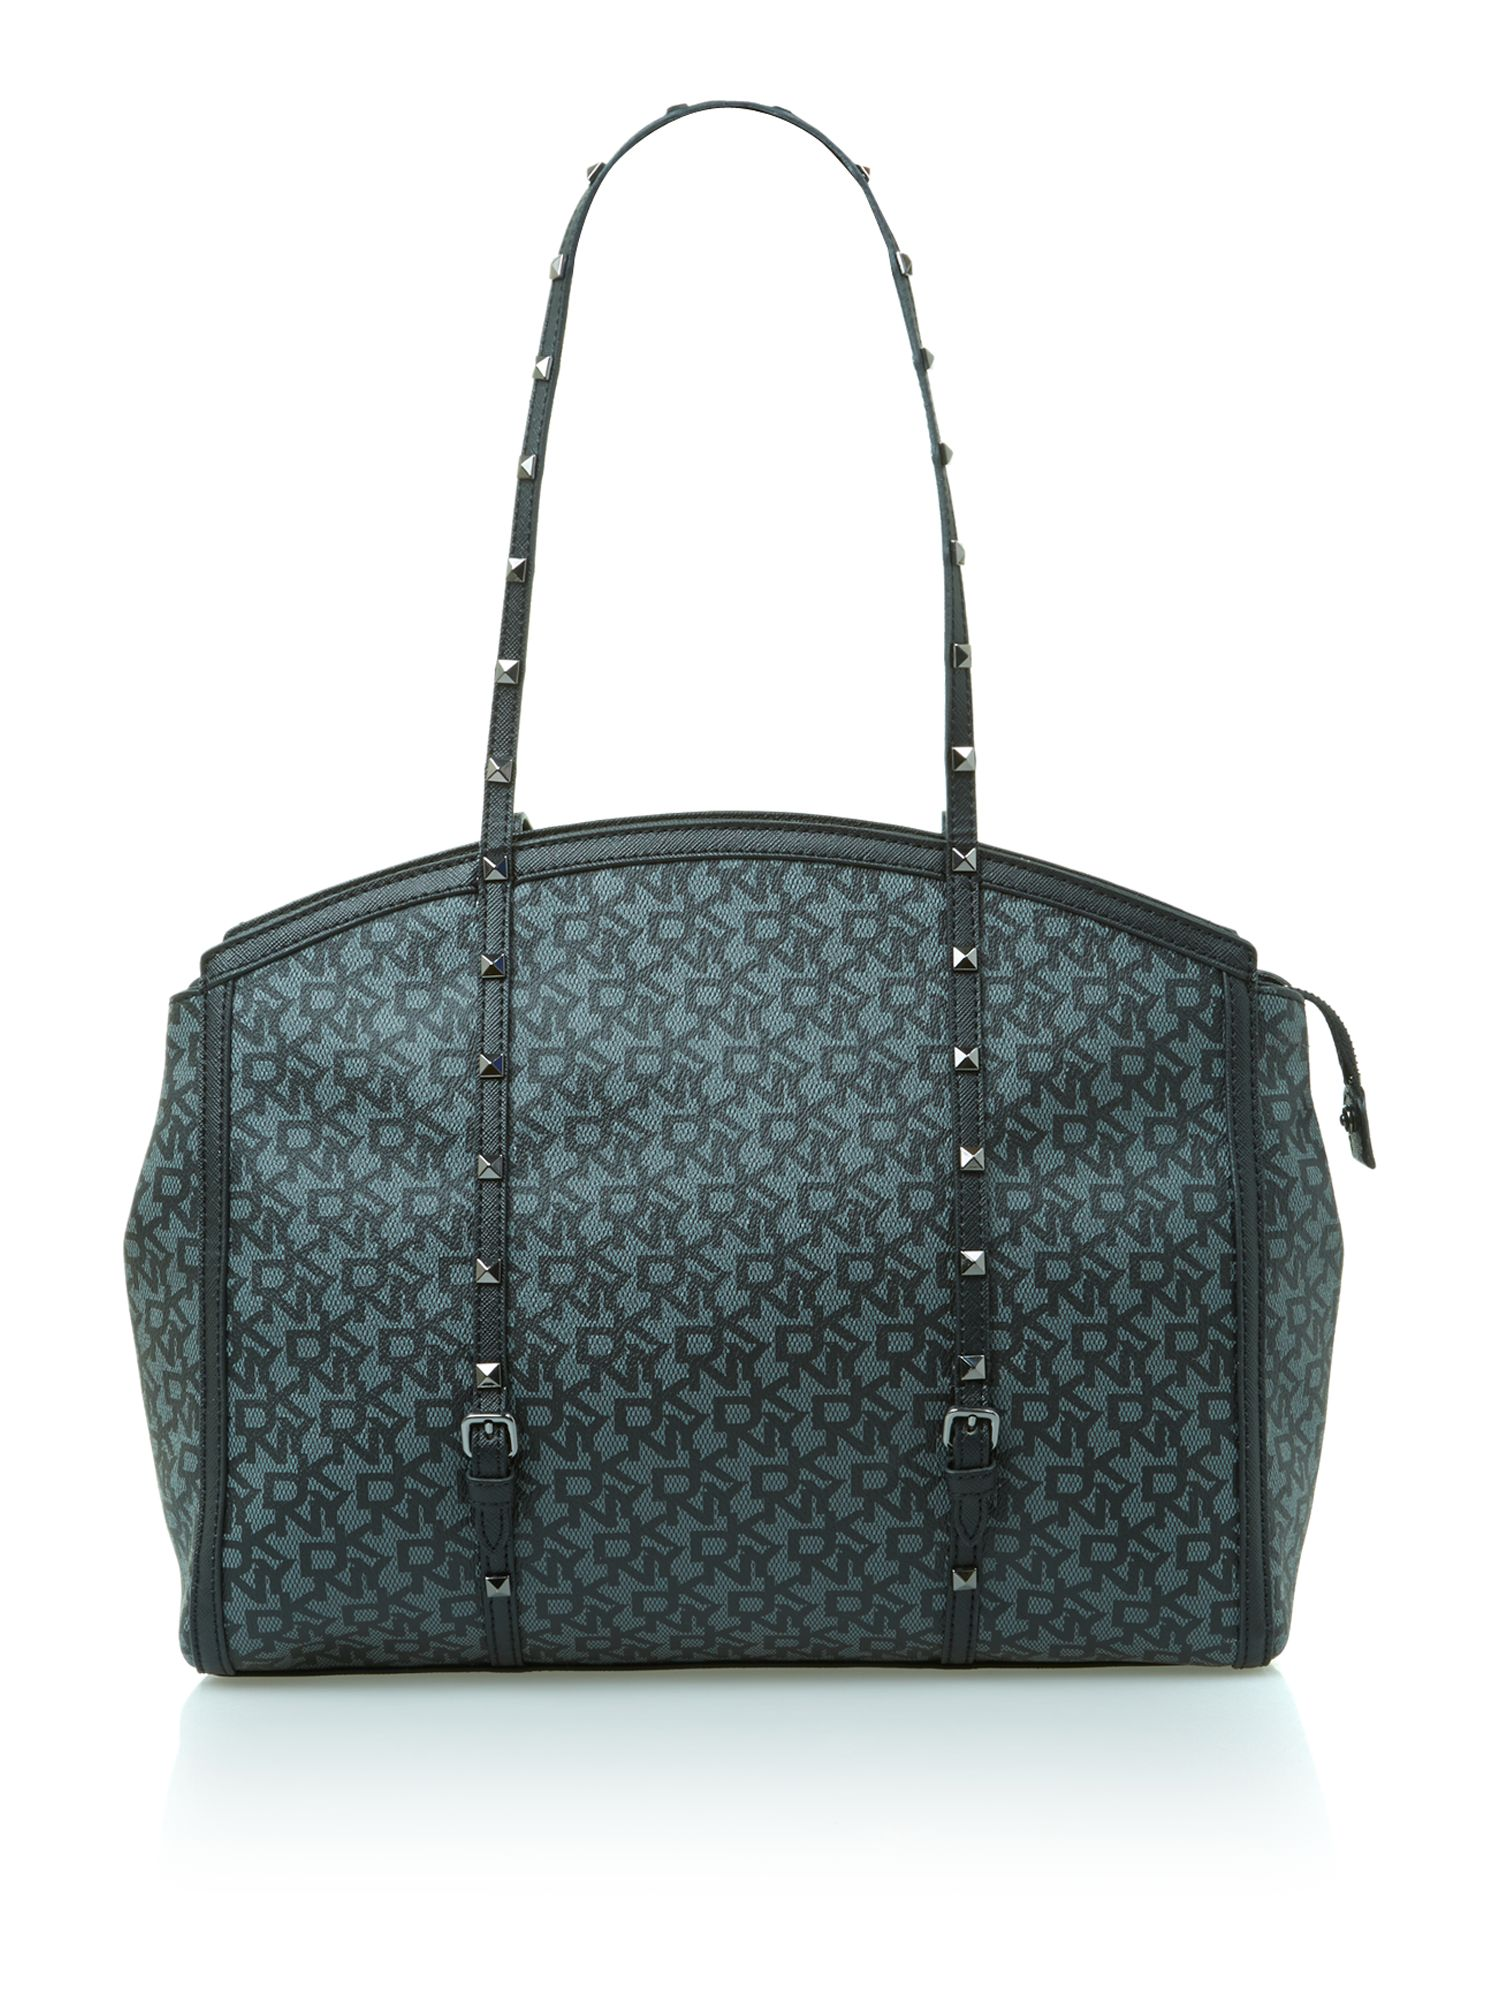 Coated logo with studs black tote bag